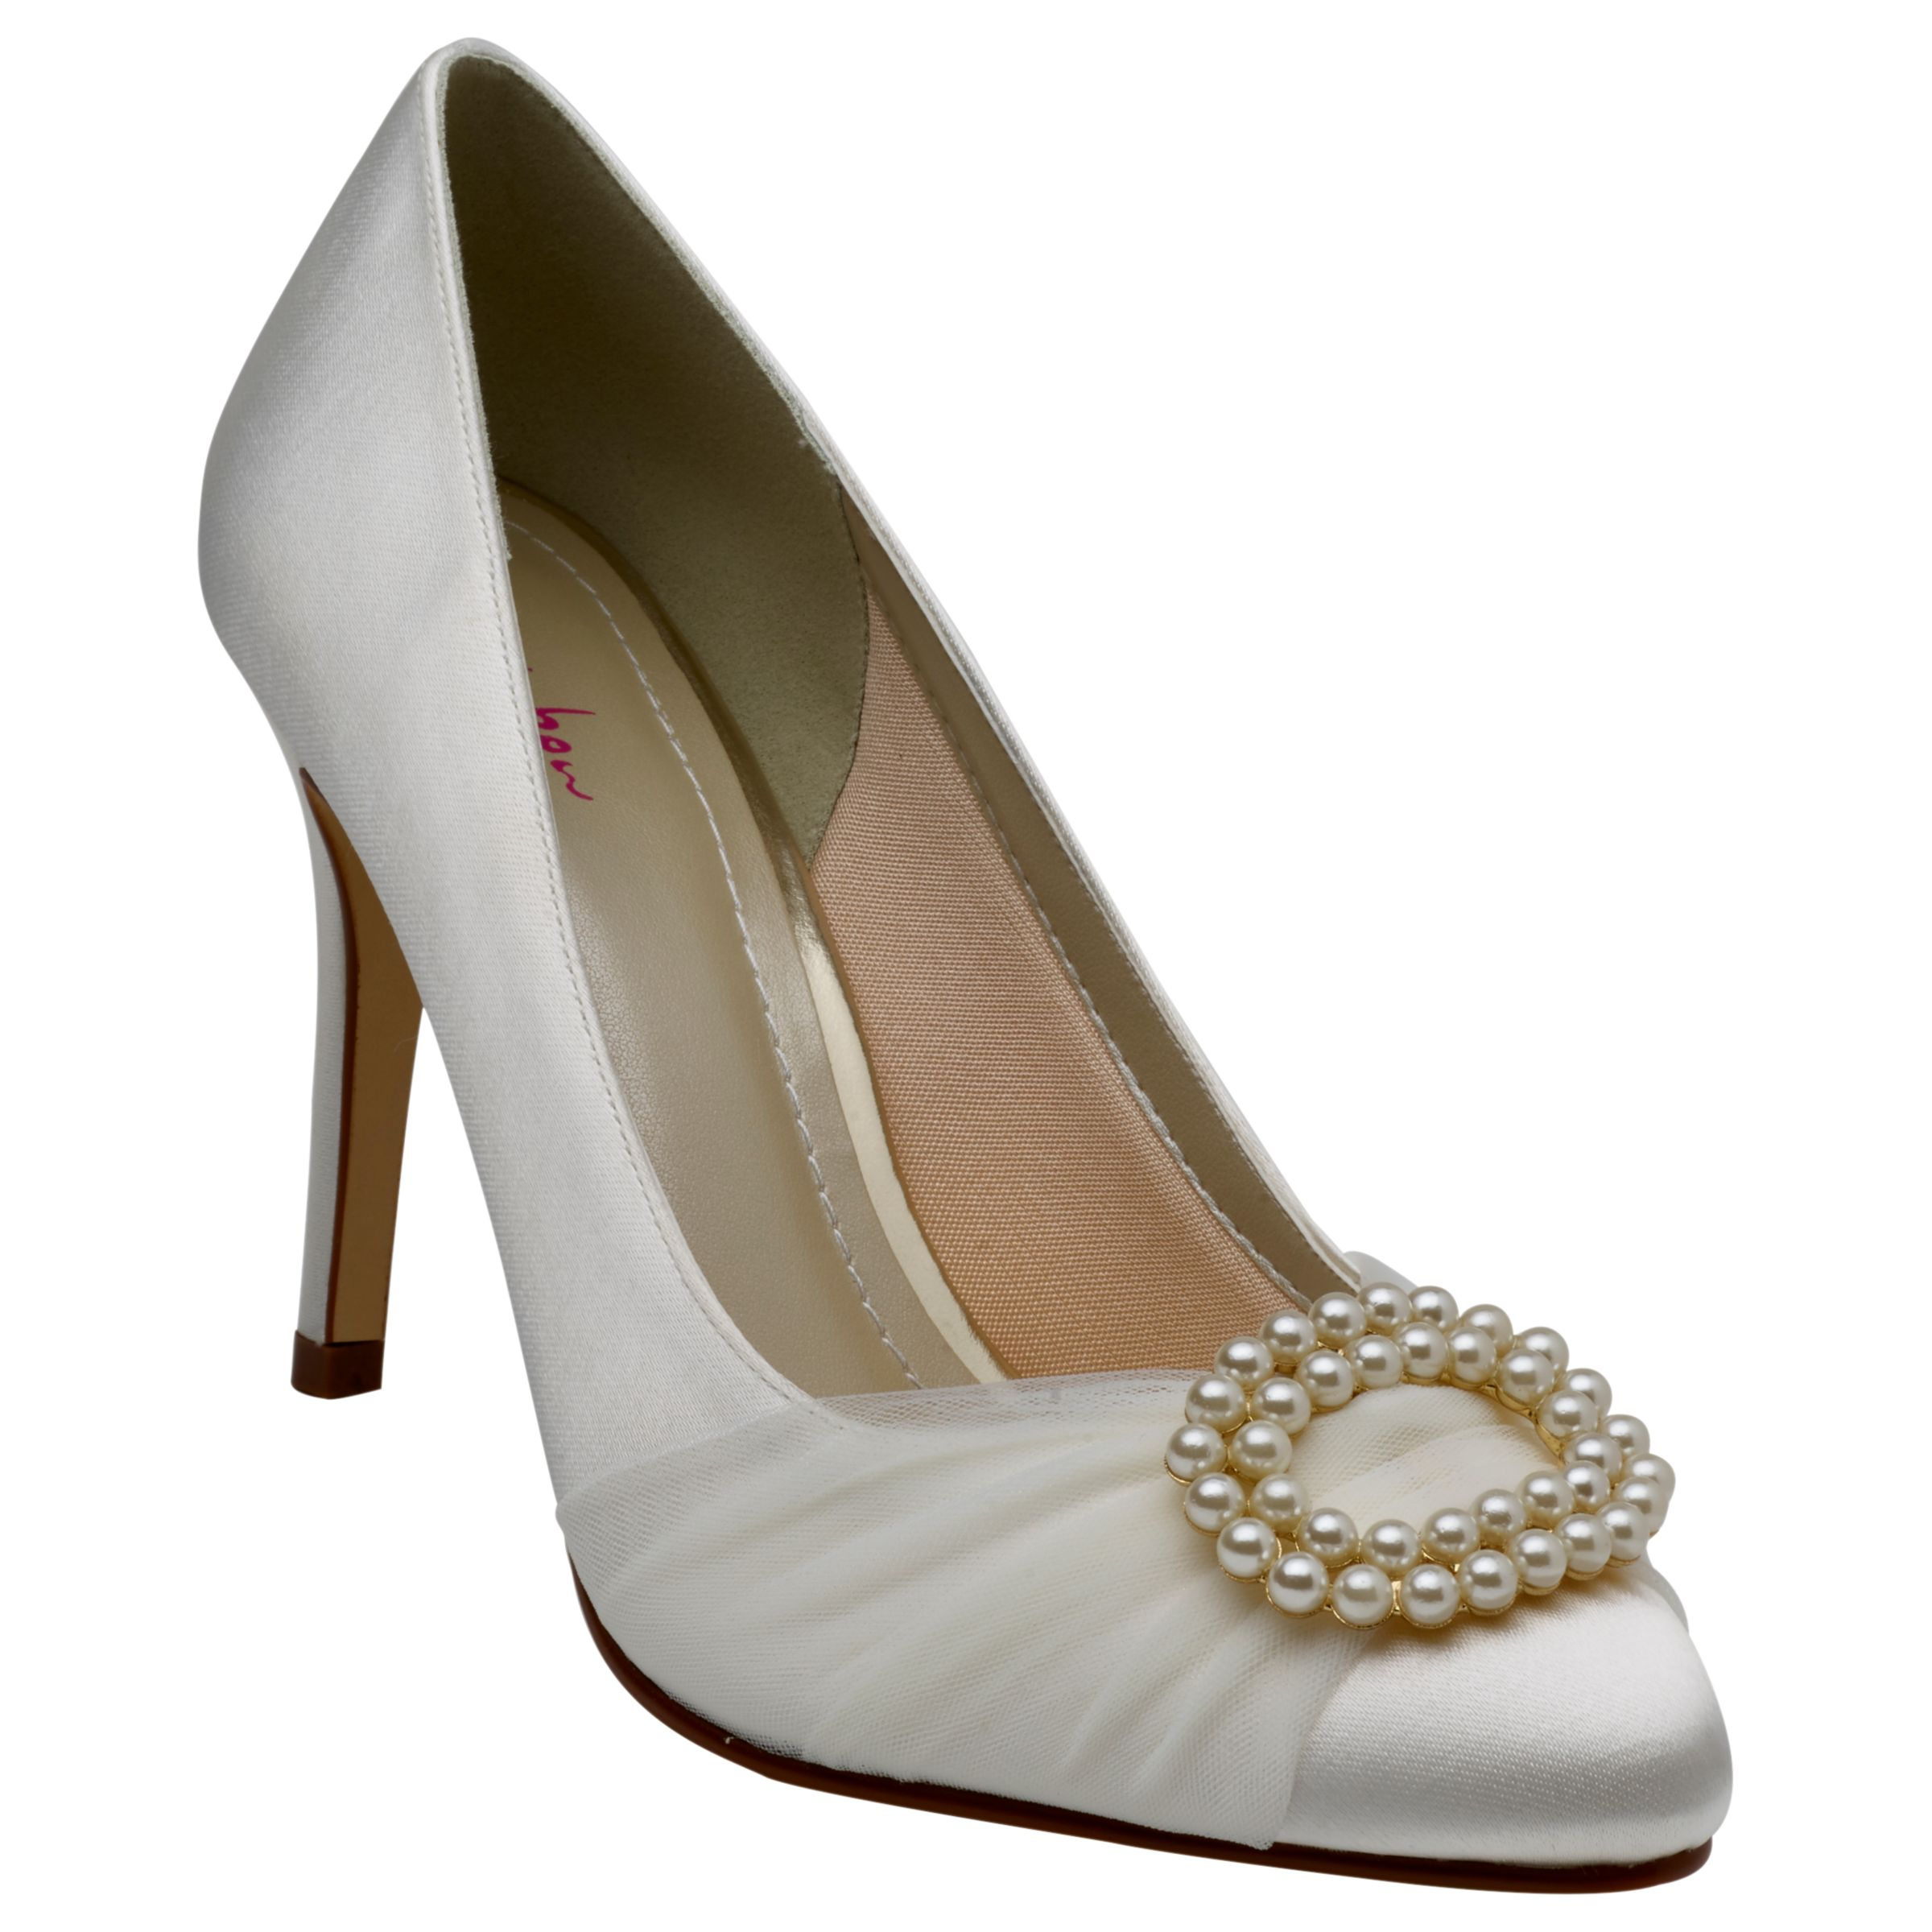 Rainbow Club Rainbow Club Beatrice Satin and Tulle Faux Pearl Stiletto Heel Court Shoes, Ivory